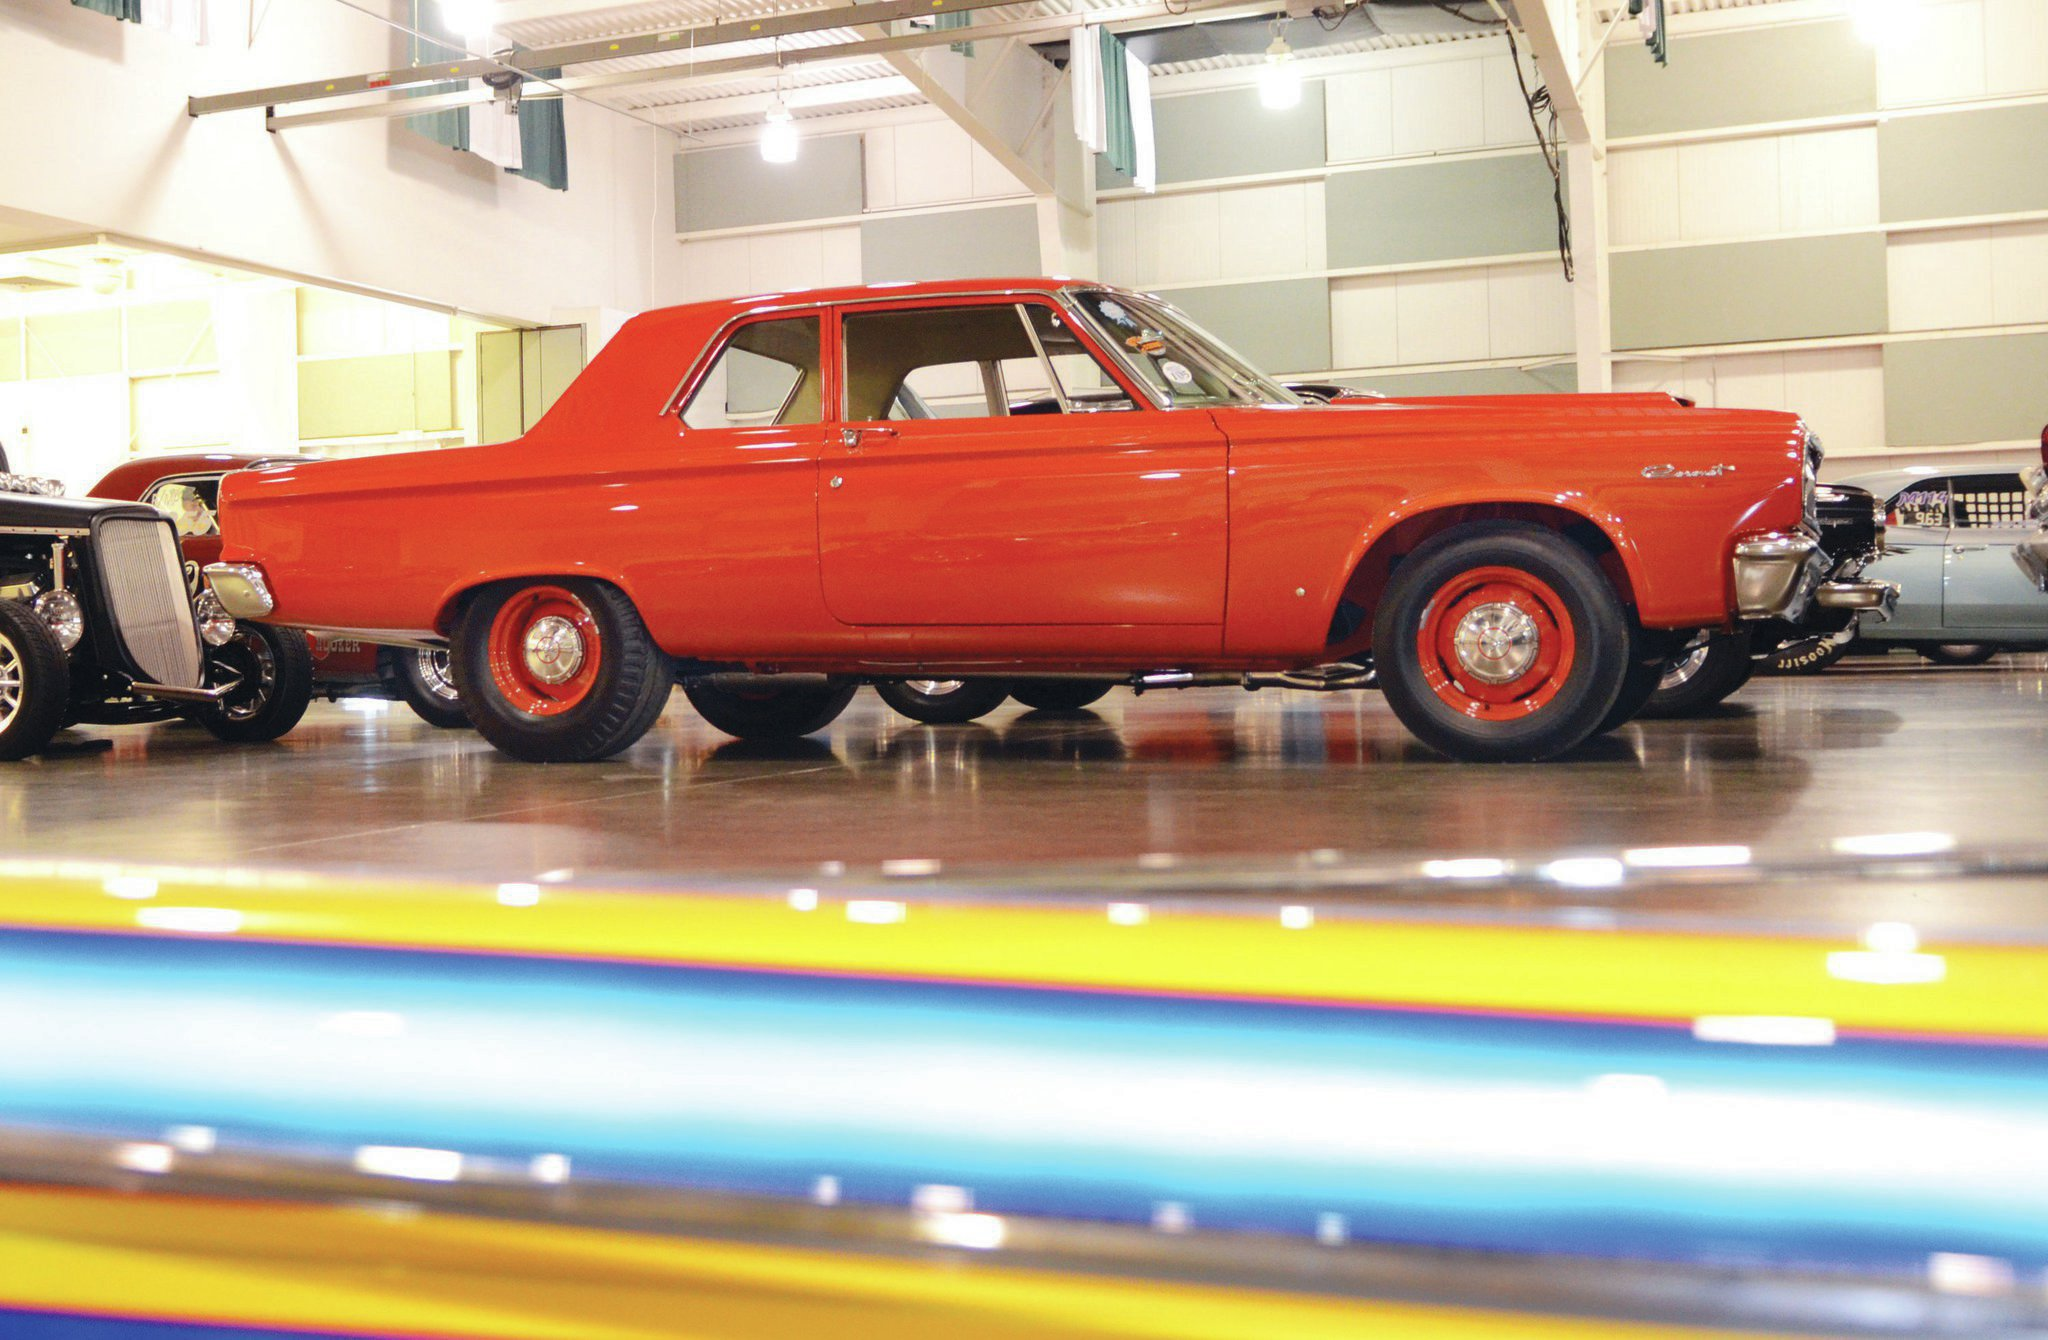 Taking home Best of Show overall was this gorgeous red '65 A990 426 Hemi Dodge Coronet owned by Charlie and Denise Caldwell. The car, a tribute that is streetable and has won numerous awards since being finished, is from Ohio.